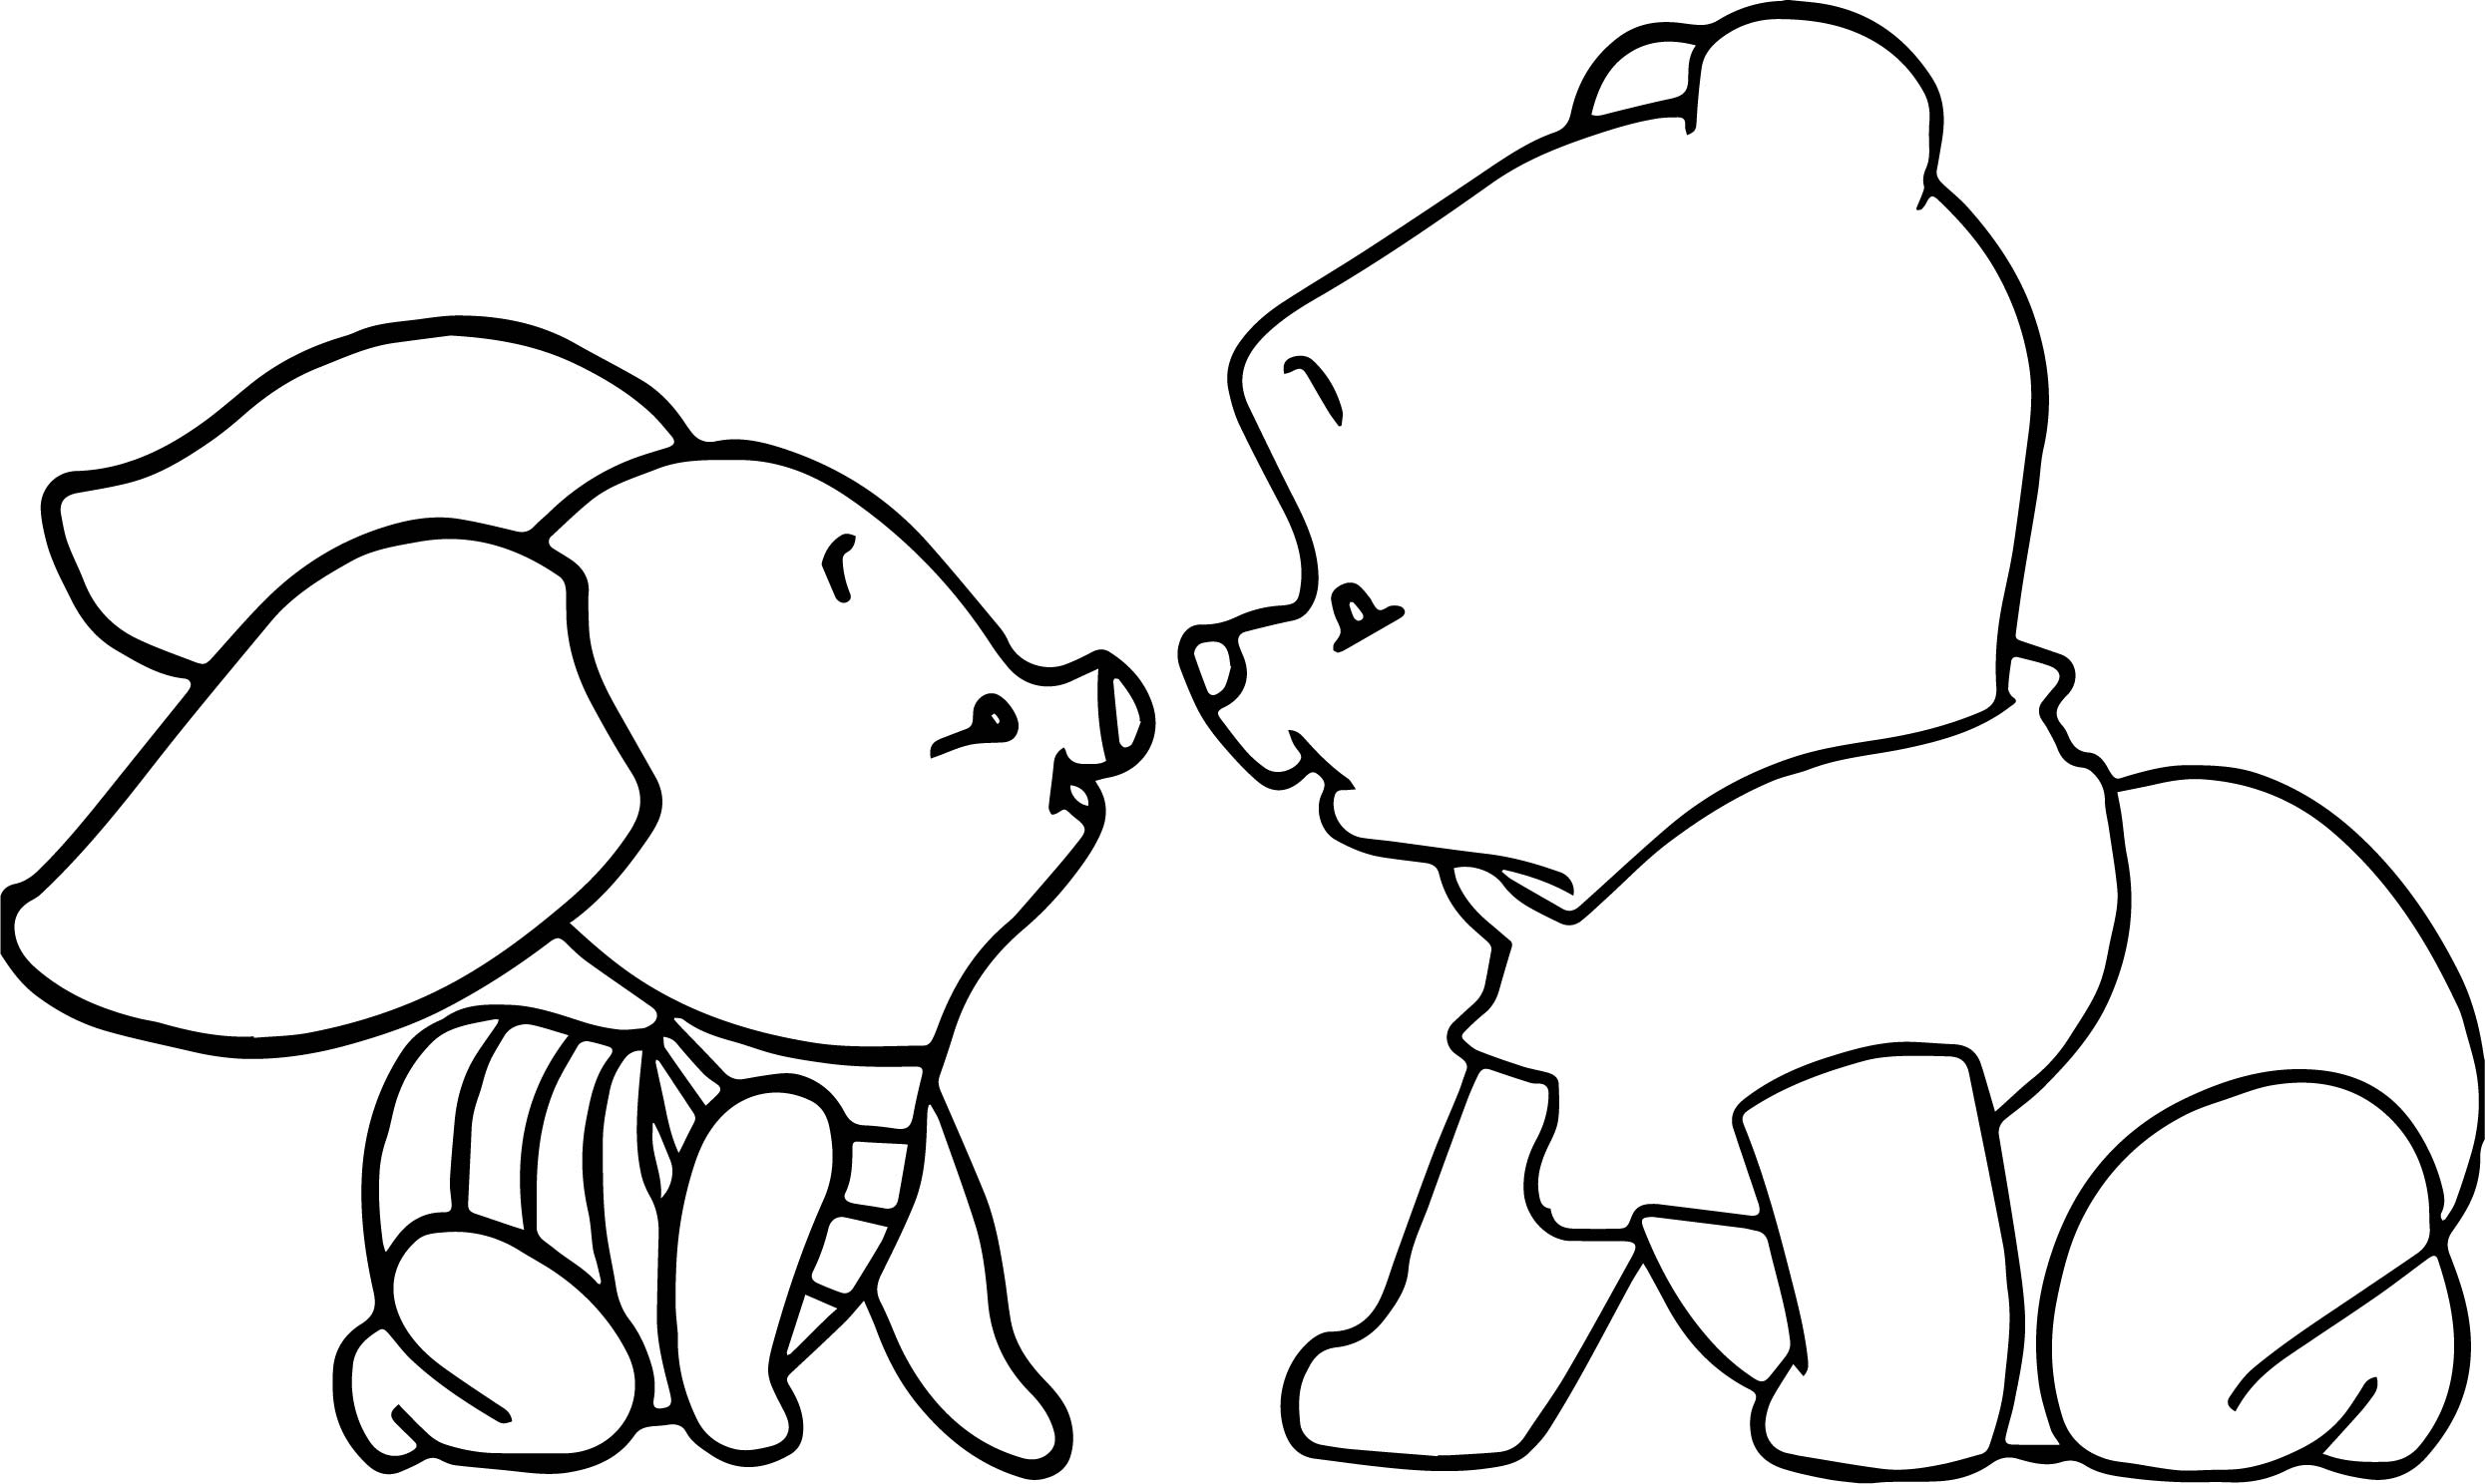 Baby piglet winnie the pooh crawling coloring page for Winnie the pooh baby coloring pages